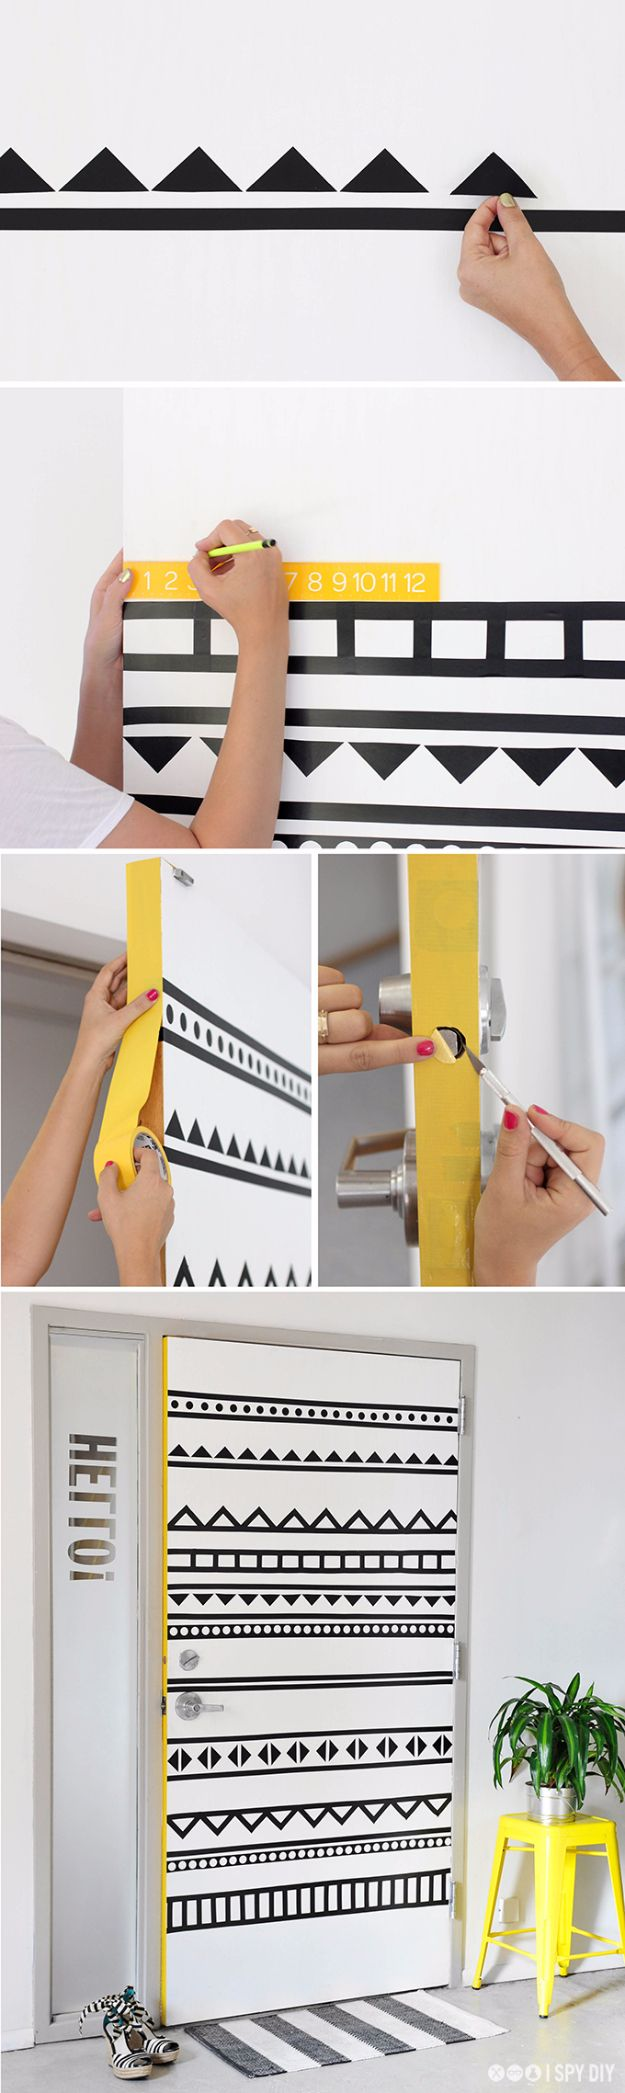 DIY Projects for Teenagers - DIY Graphic Door - Cool Teen Crafts Ideas for Bedroom Decor, Gifts, Clothes and Fun Room Organization. Summer and Awesome School Stuff http://diyjoy.com/cool-diy-projects-for-teenagers